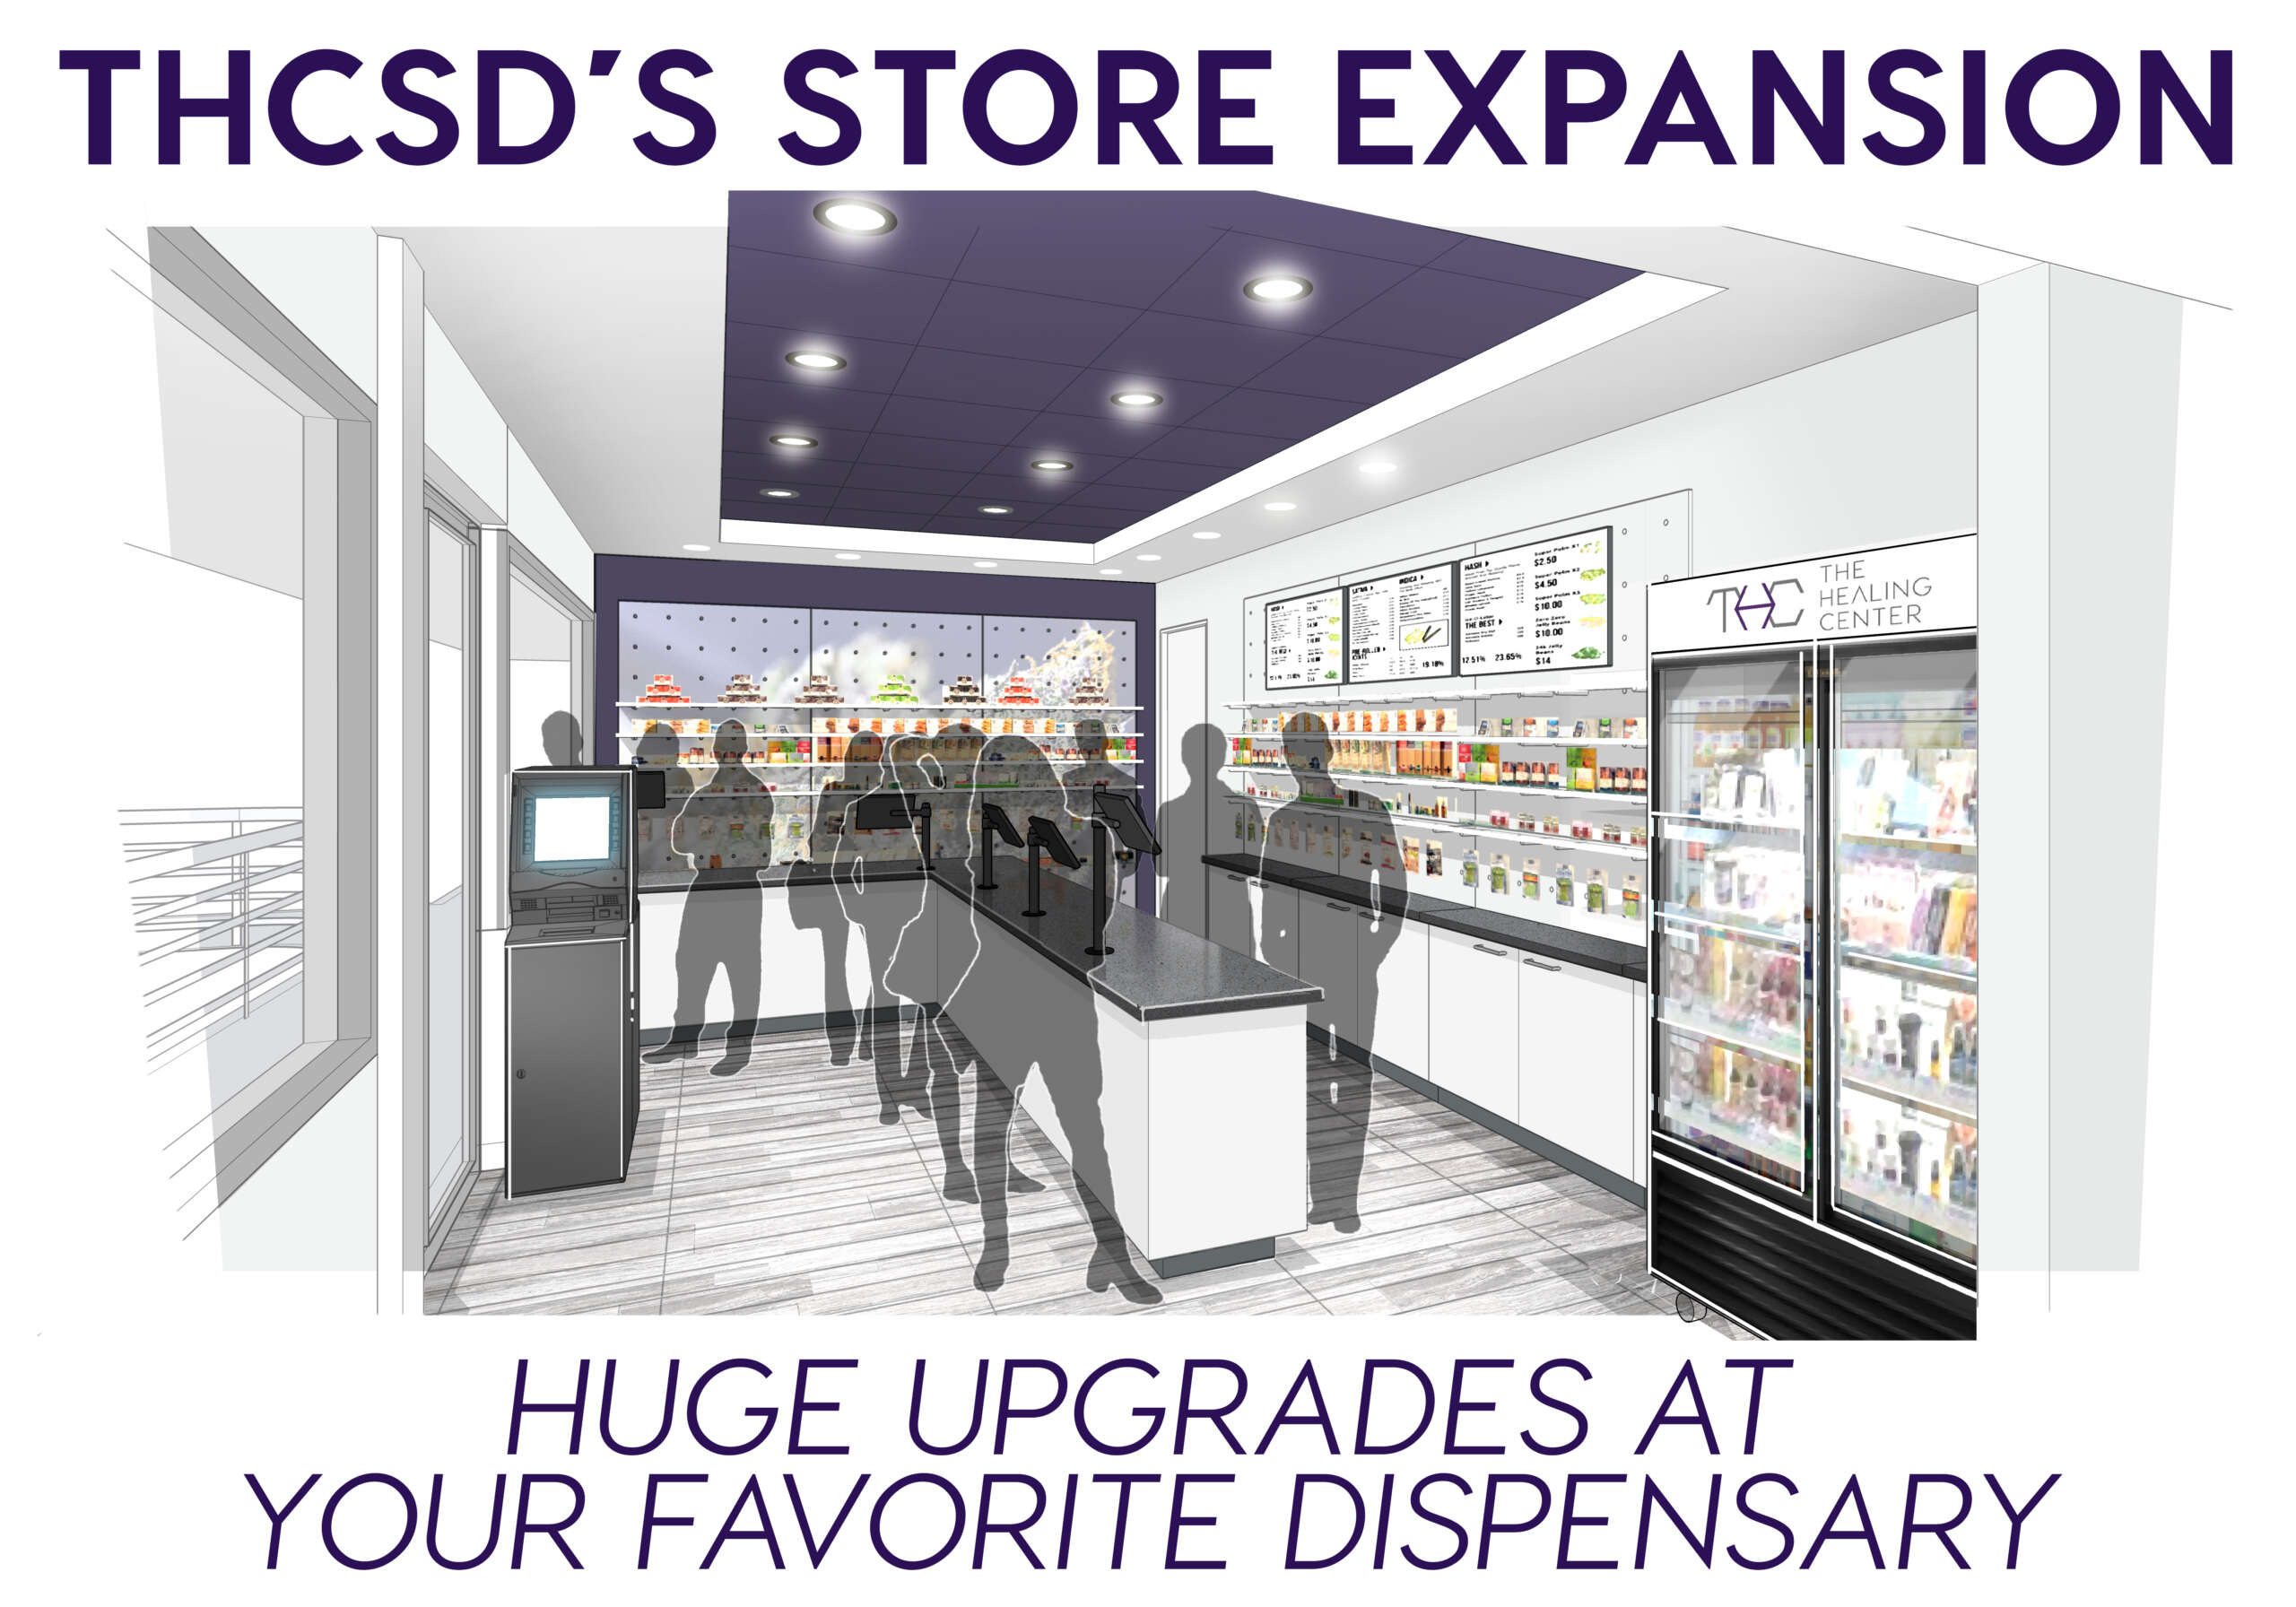 An overview of what you can expect from THCSD's new store expansion in 2021.